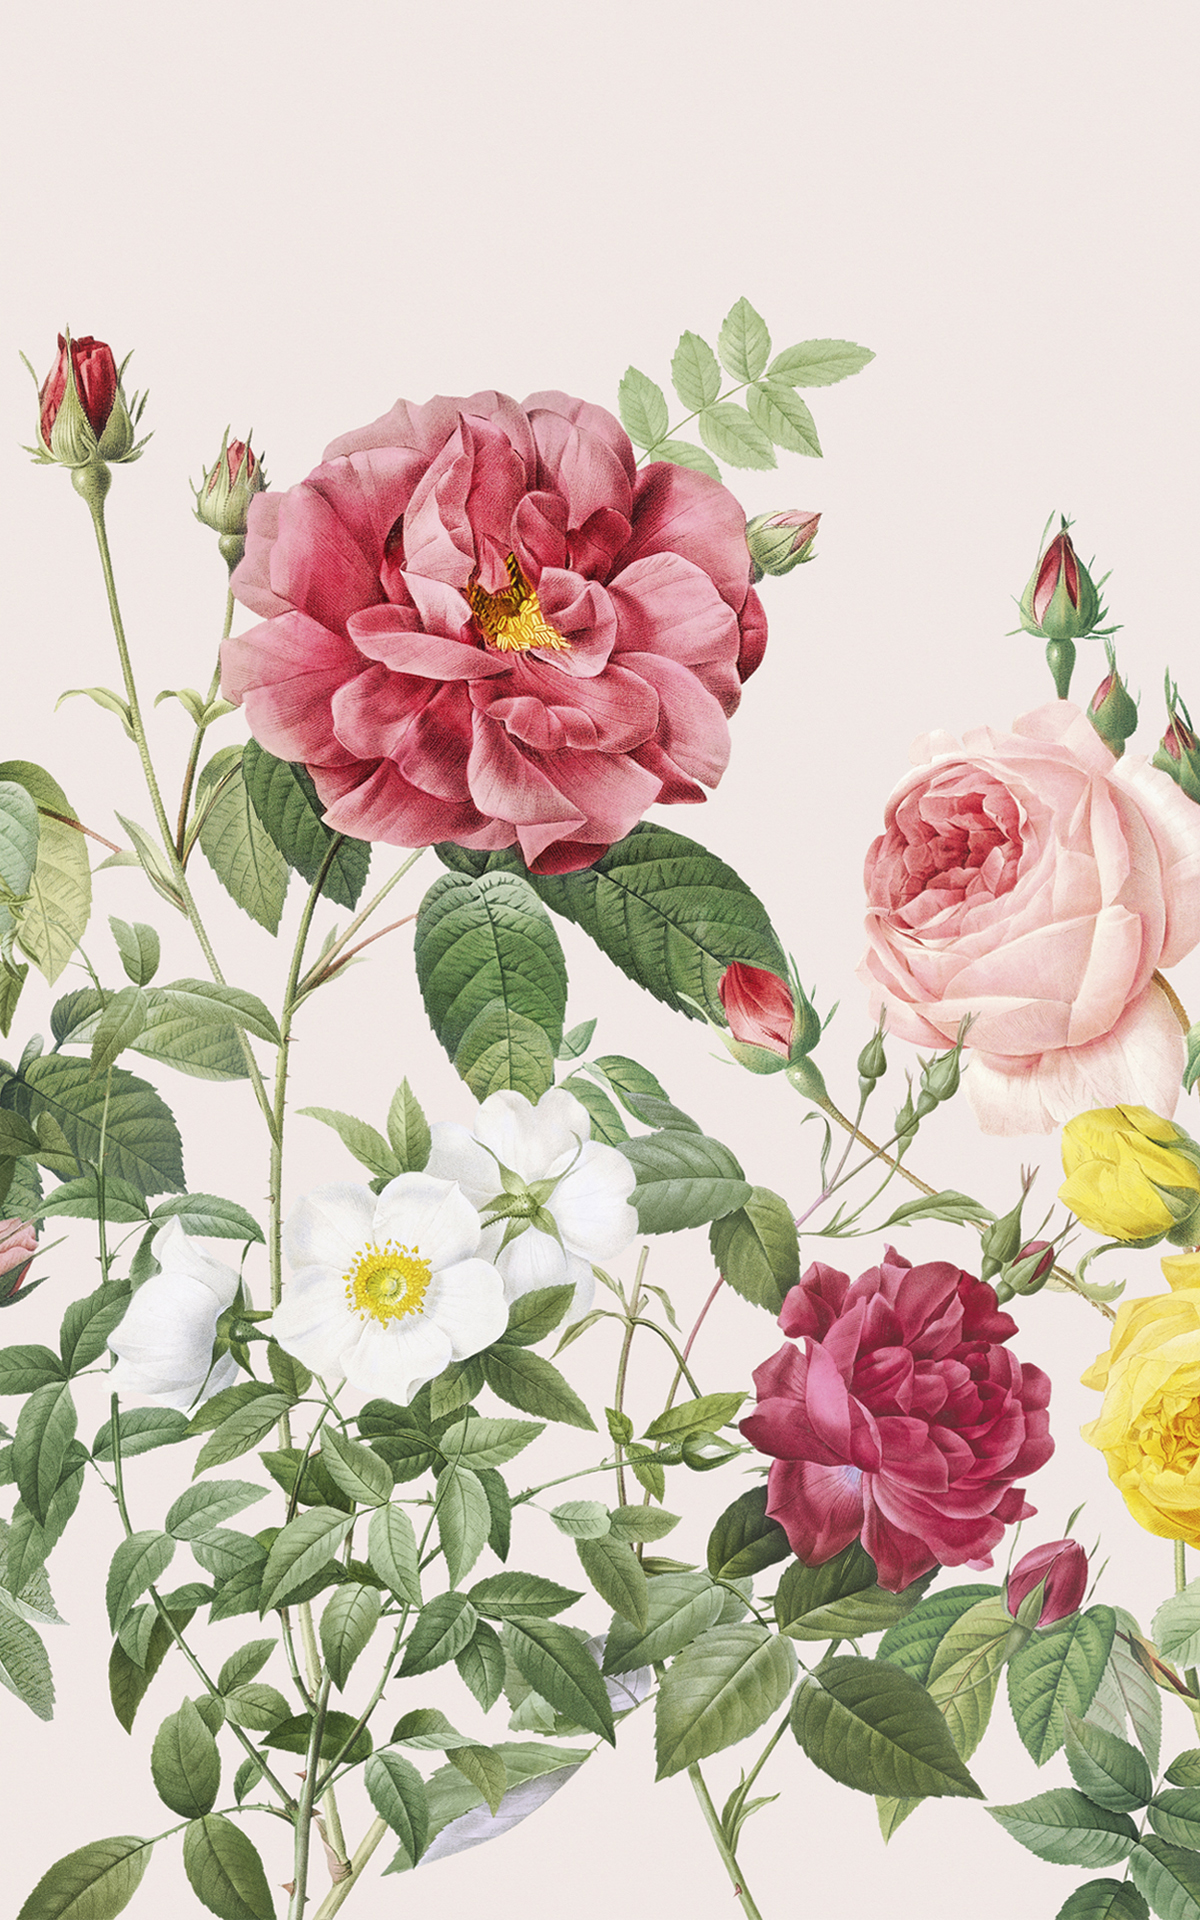 Pink Spring Flowers Vintage Floral Lovely Wallpaper Mural Product Image